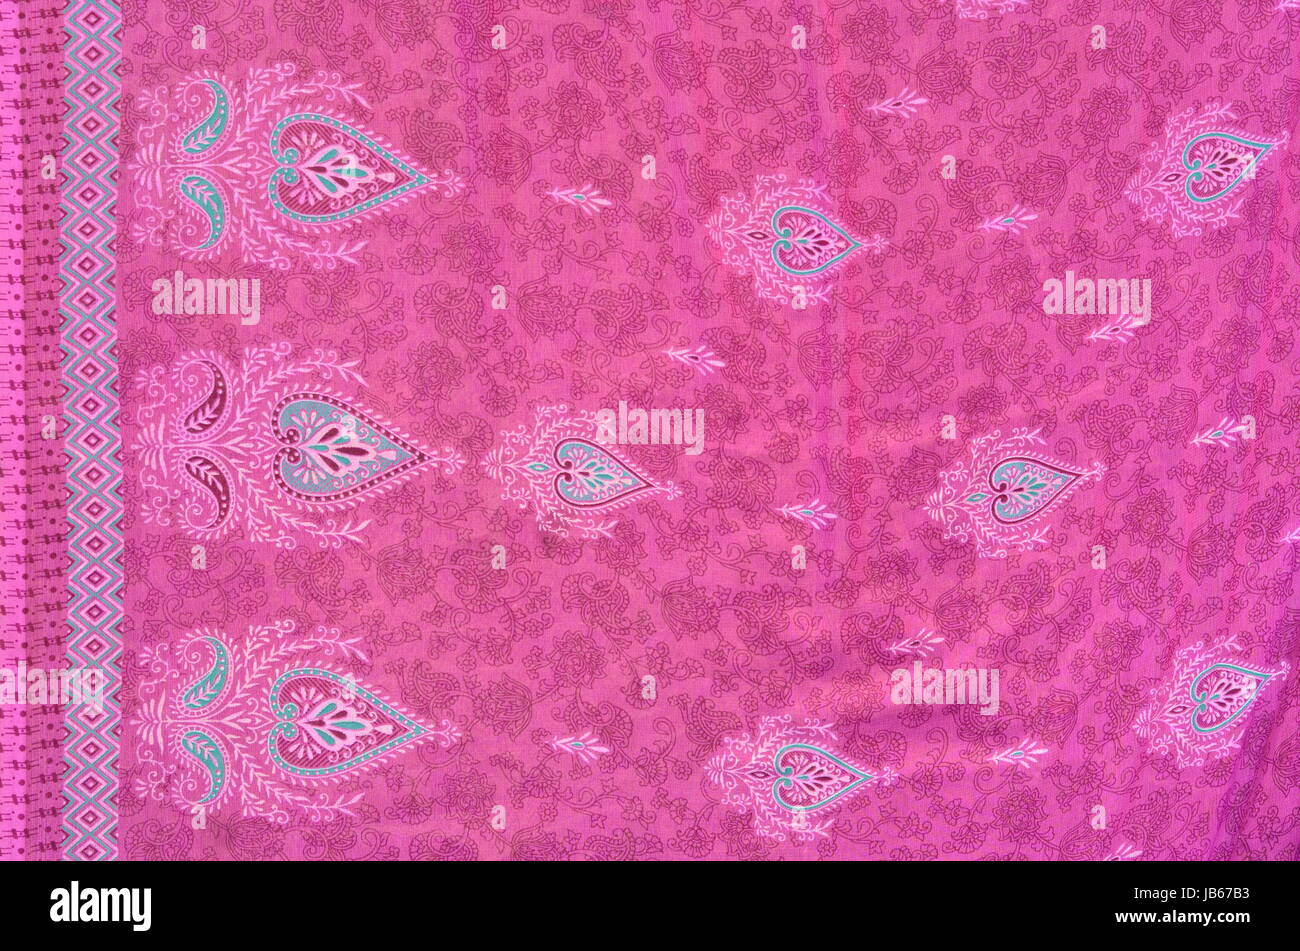 Pink Fabric Texture of a Sarong with stylised hearts - Stock Image